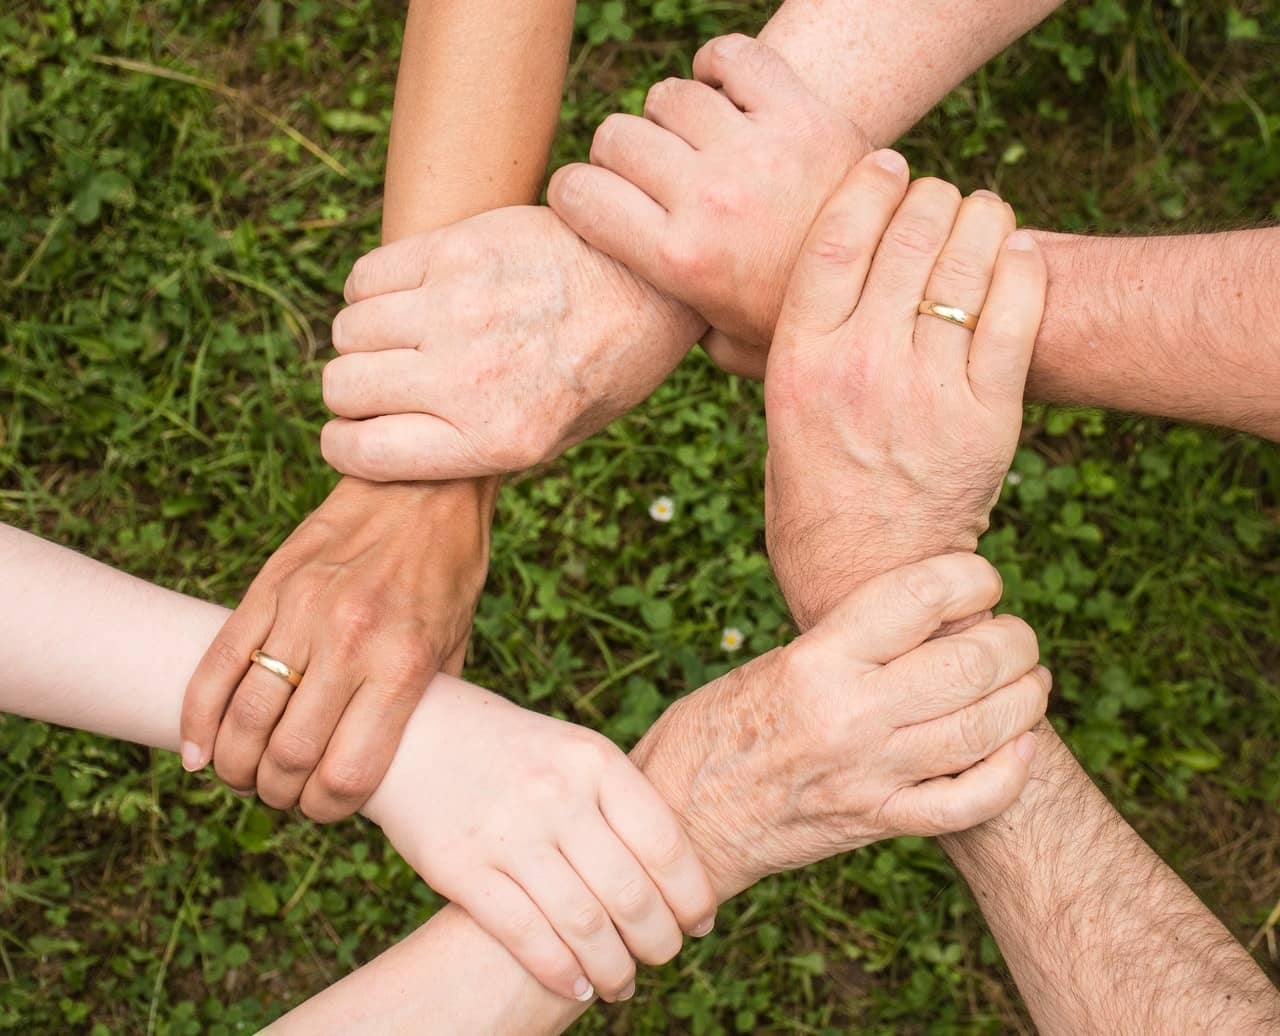 A group of people linking hands